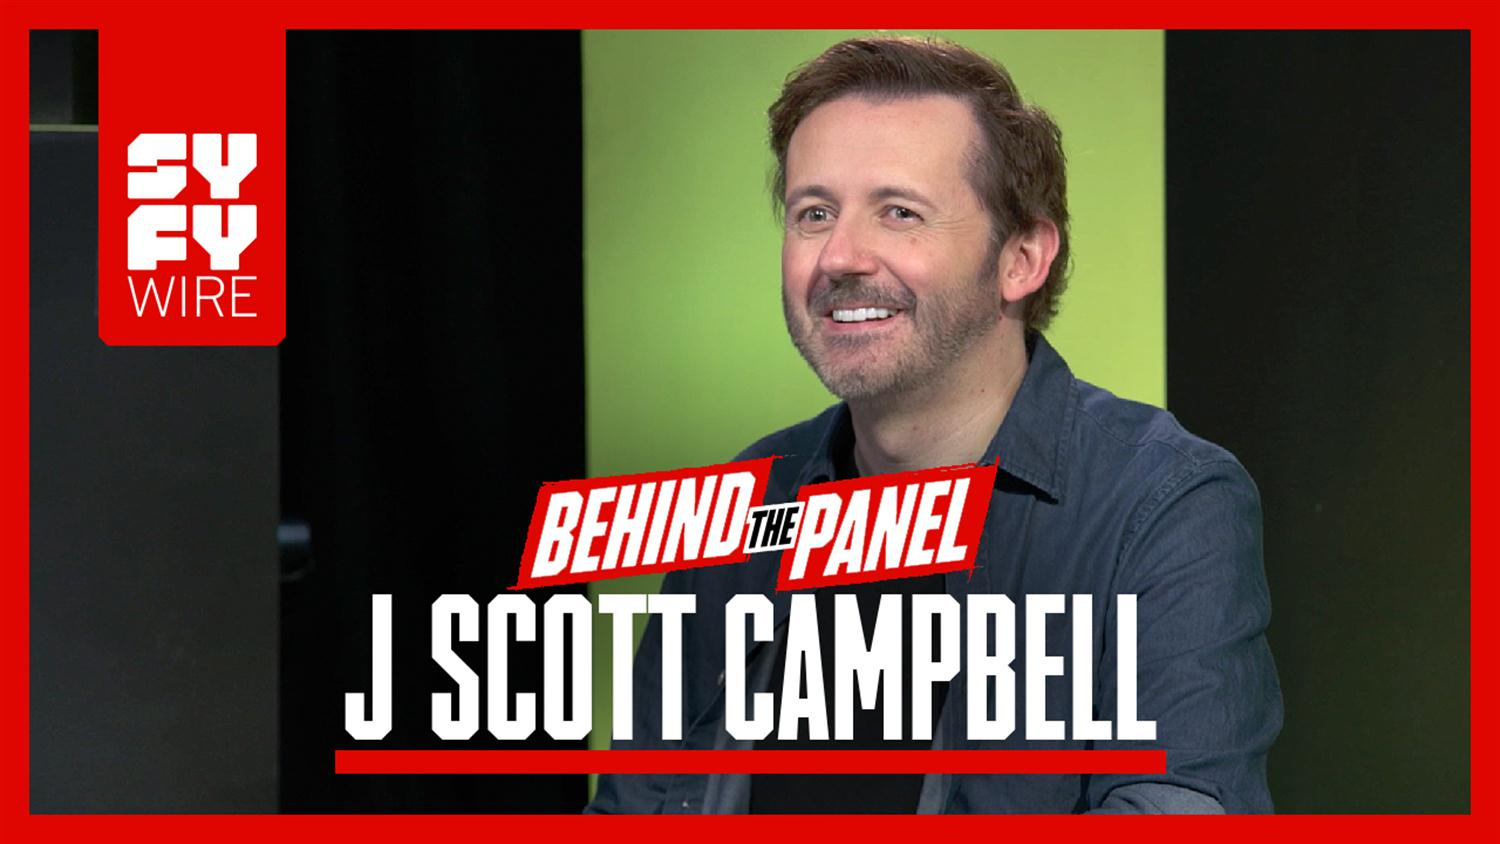 Spider-Man Was Always The Goal: J. Scott Campbell's Story (Behind the Panel)